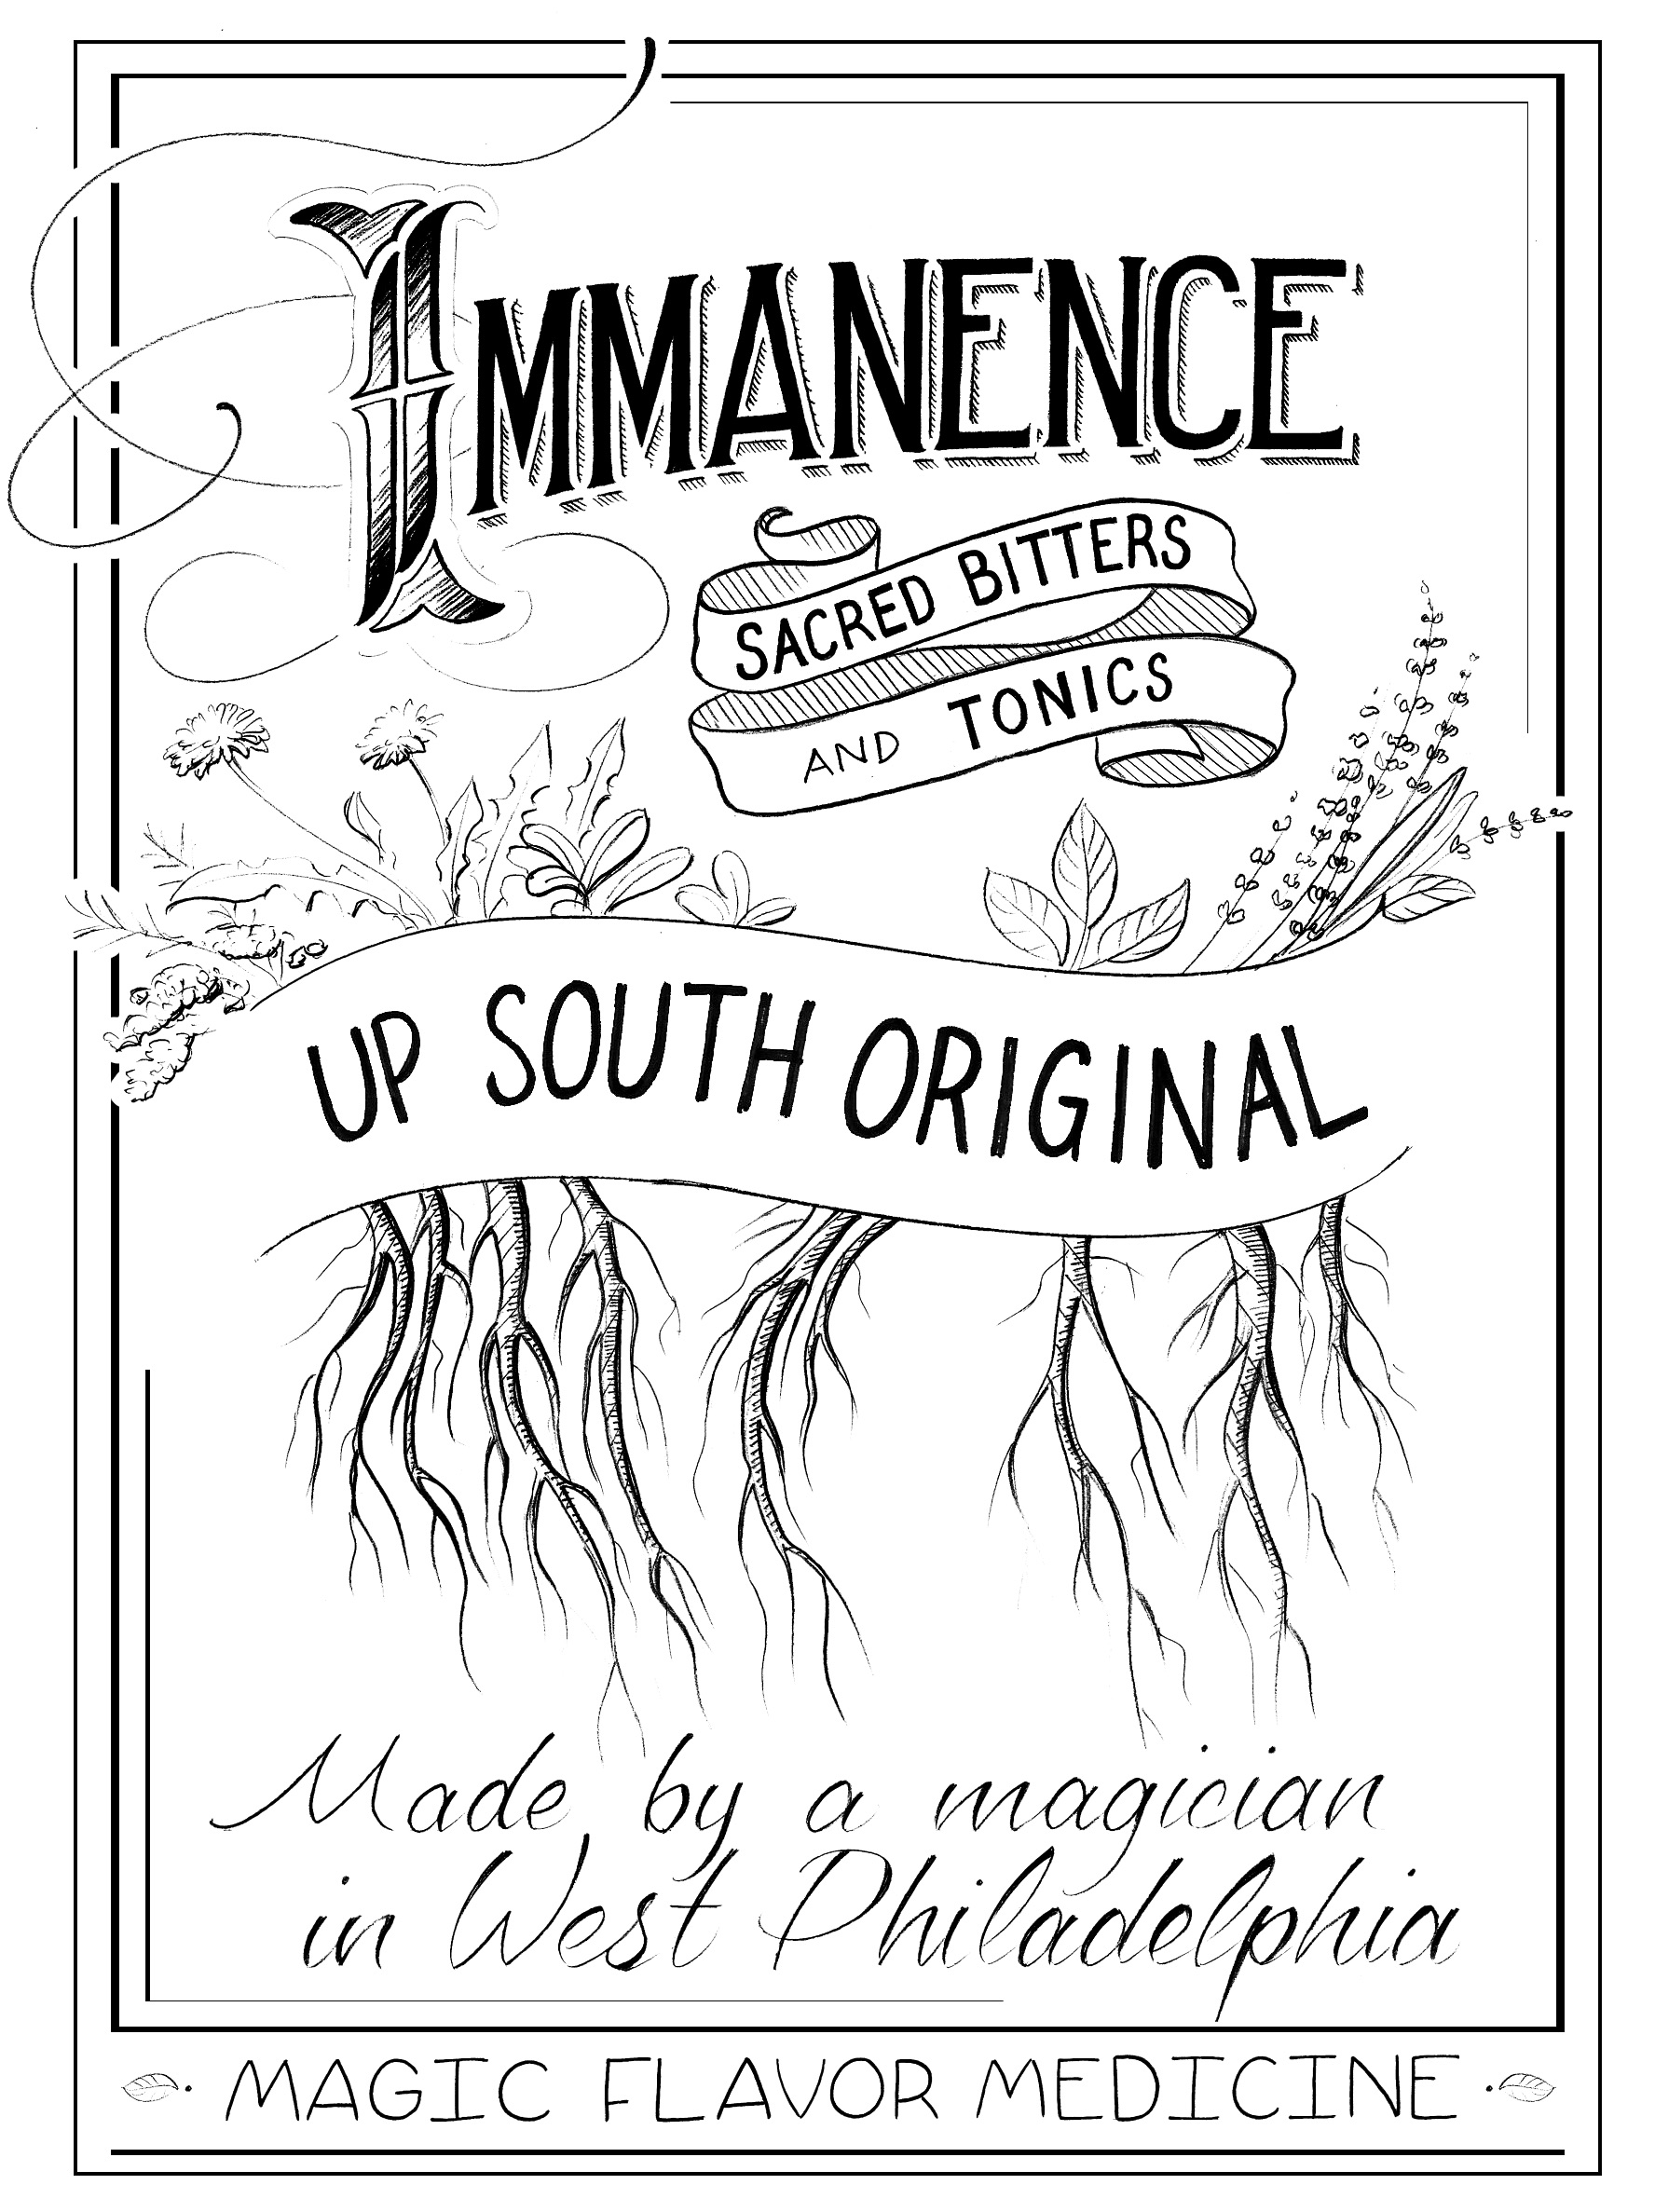 graphic design Justin Turkus Philadelphia tattoo artist immanence bitters label logo.jpg